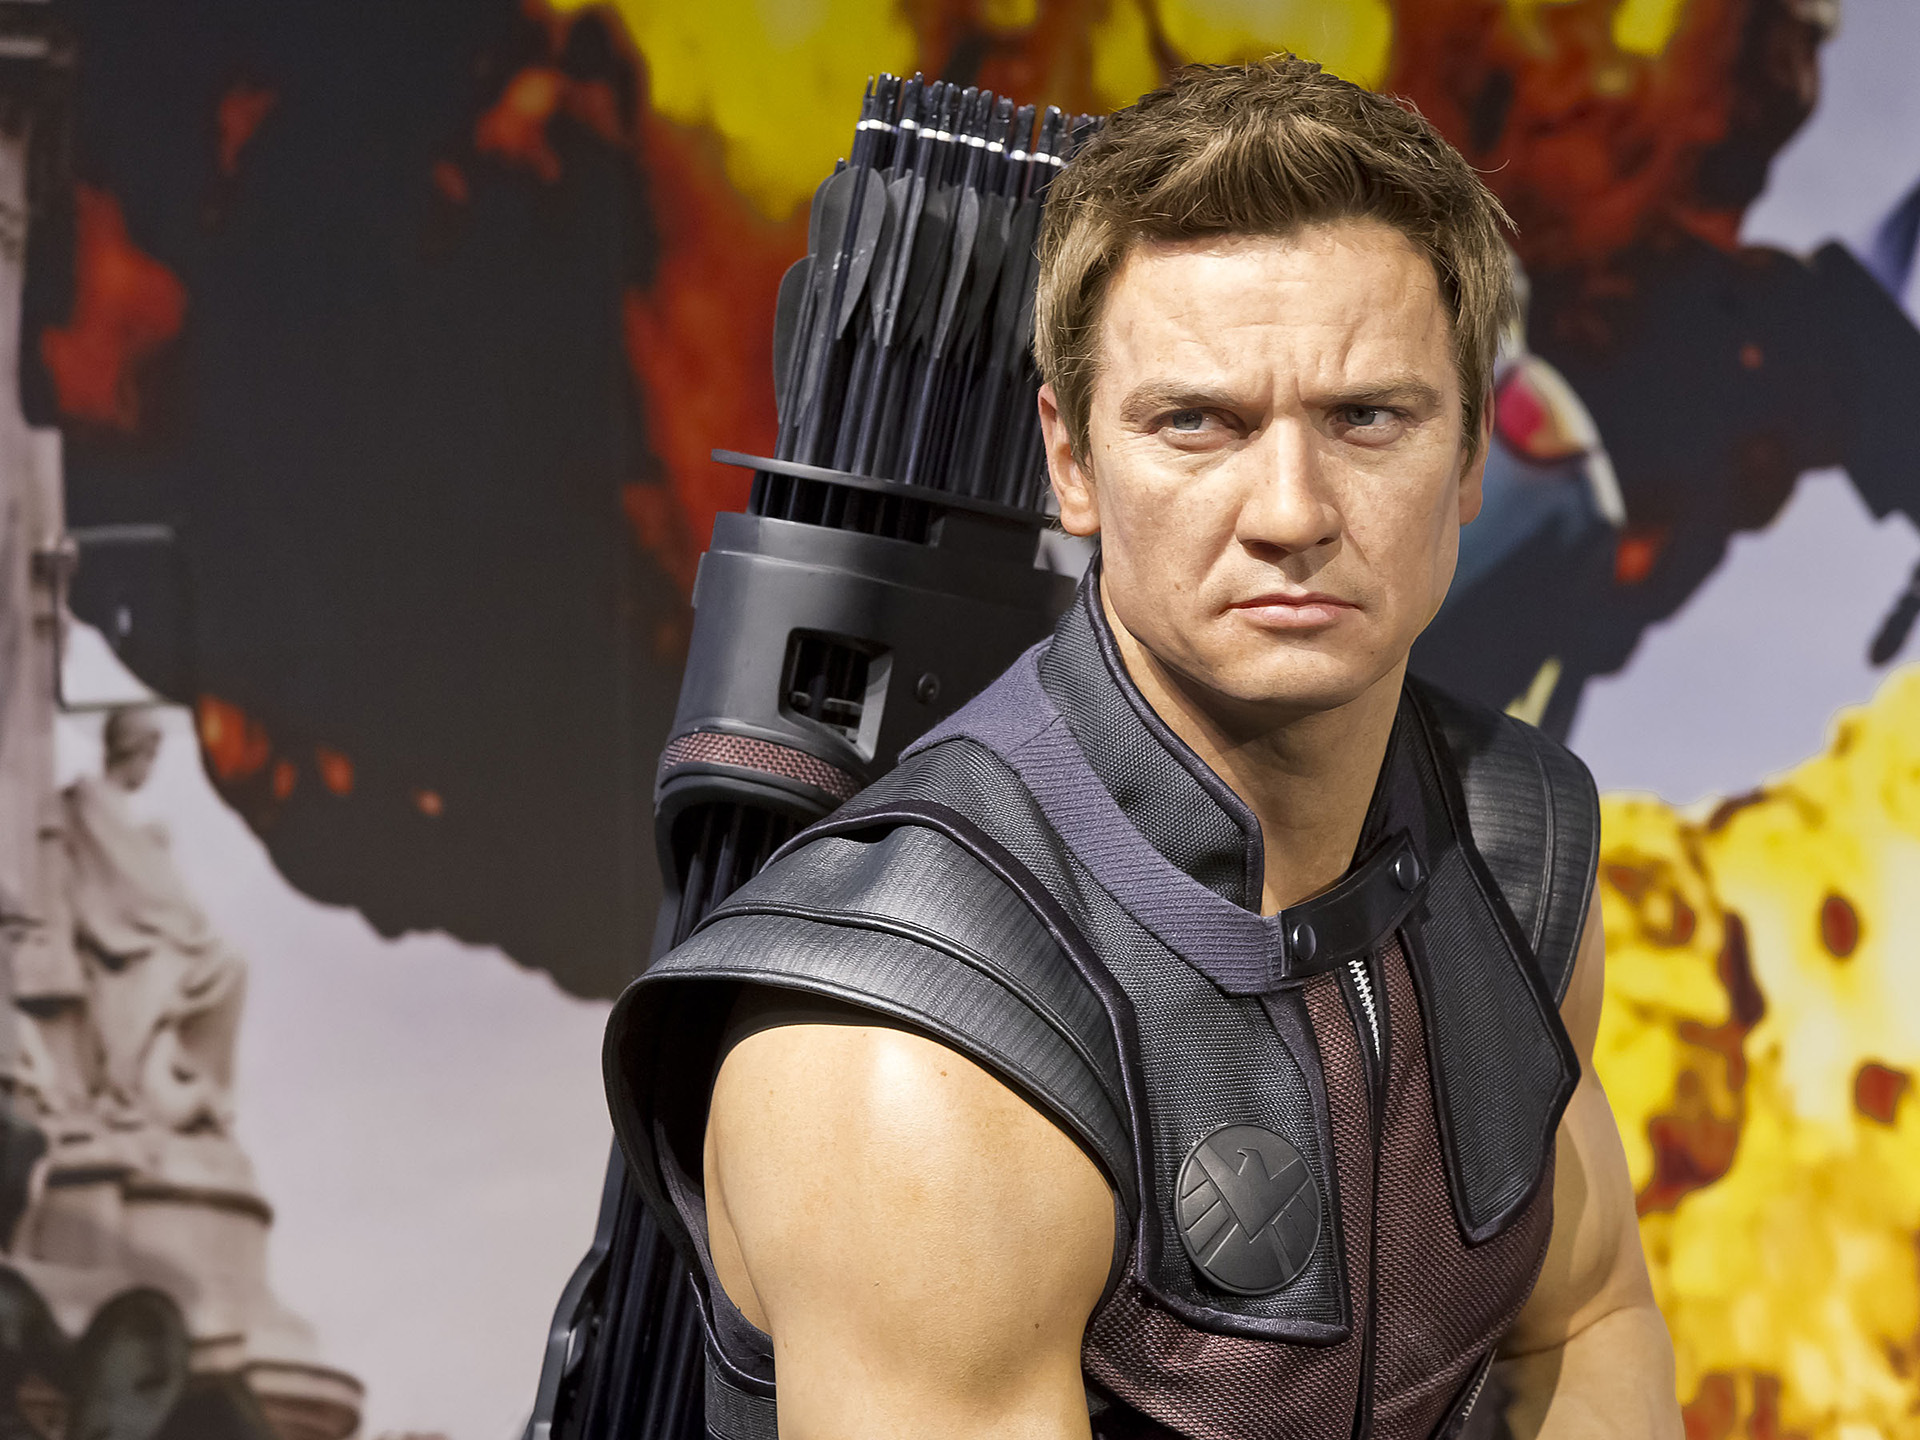 Hawkeye's figure at Madame Tussauds London